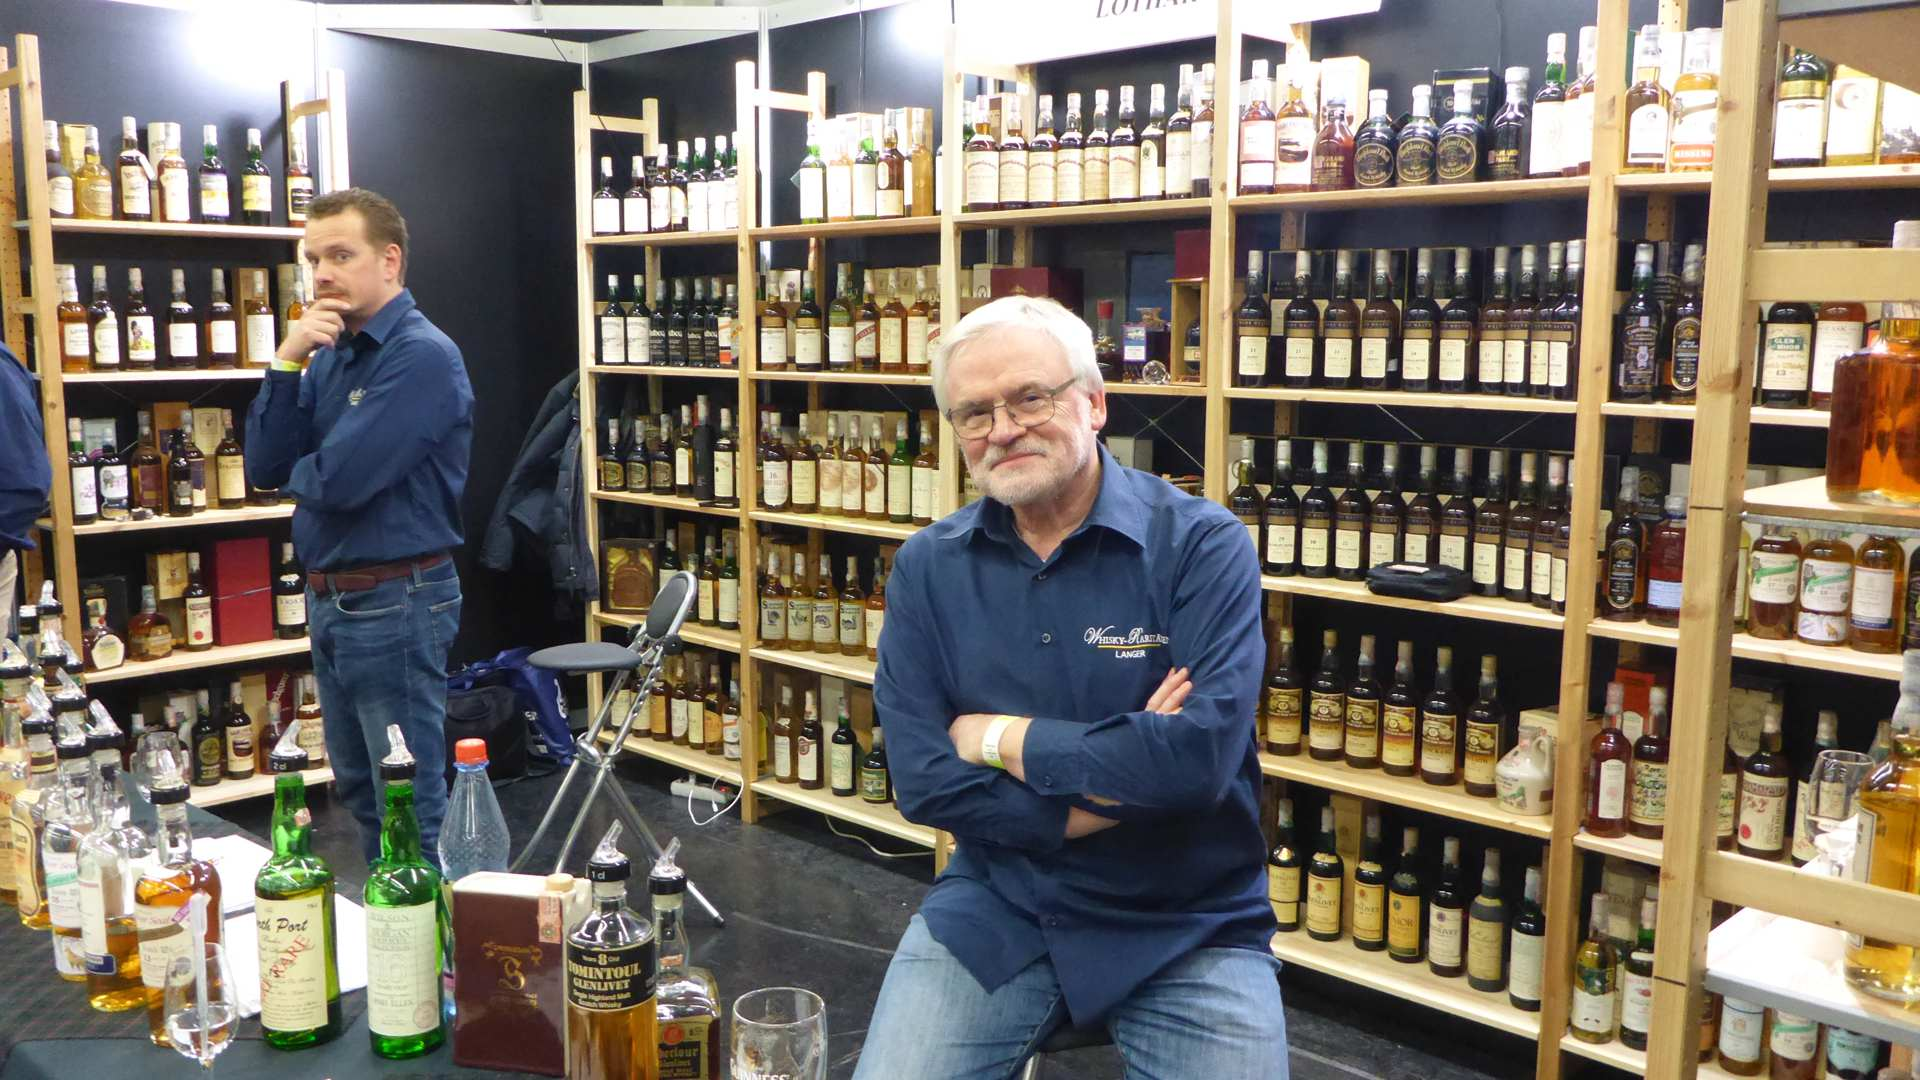 whiskymesse the village n rnberg 2018 ein fotobericht whiskyexperts. Black Bedroom Furniture Sets. Home Design Ideas